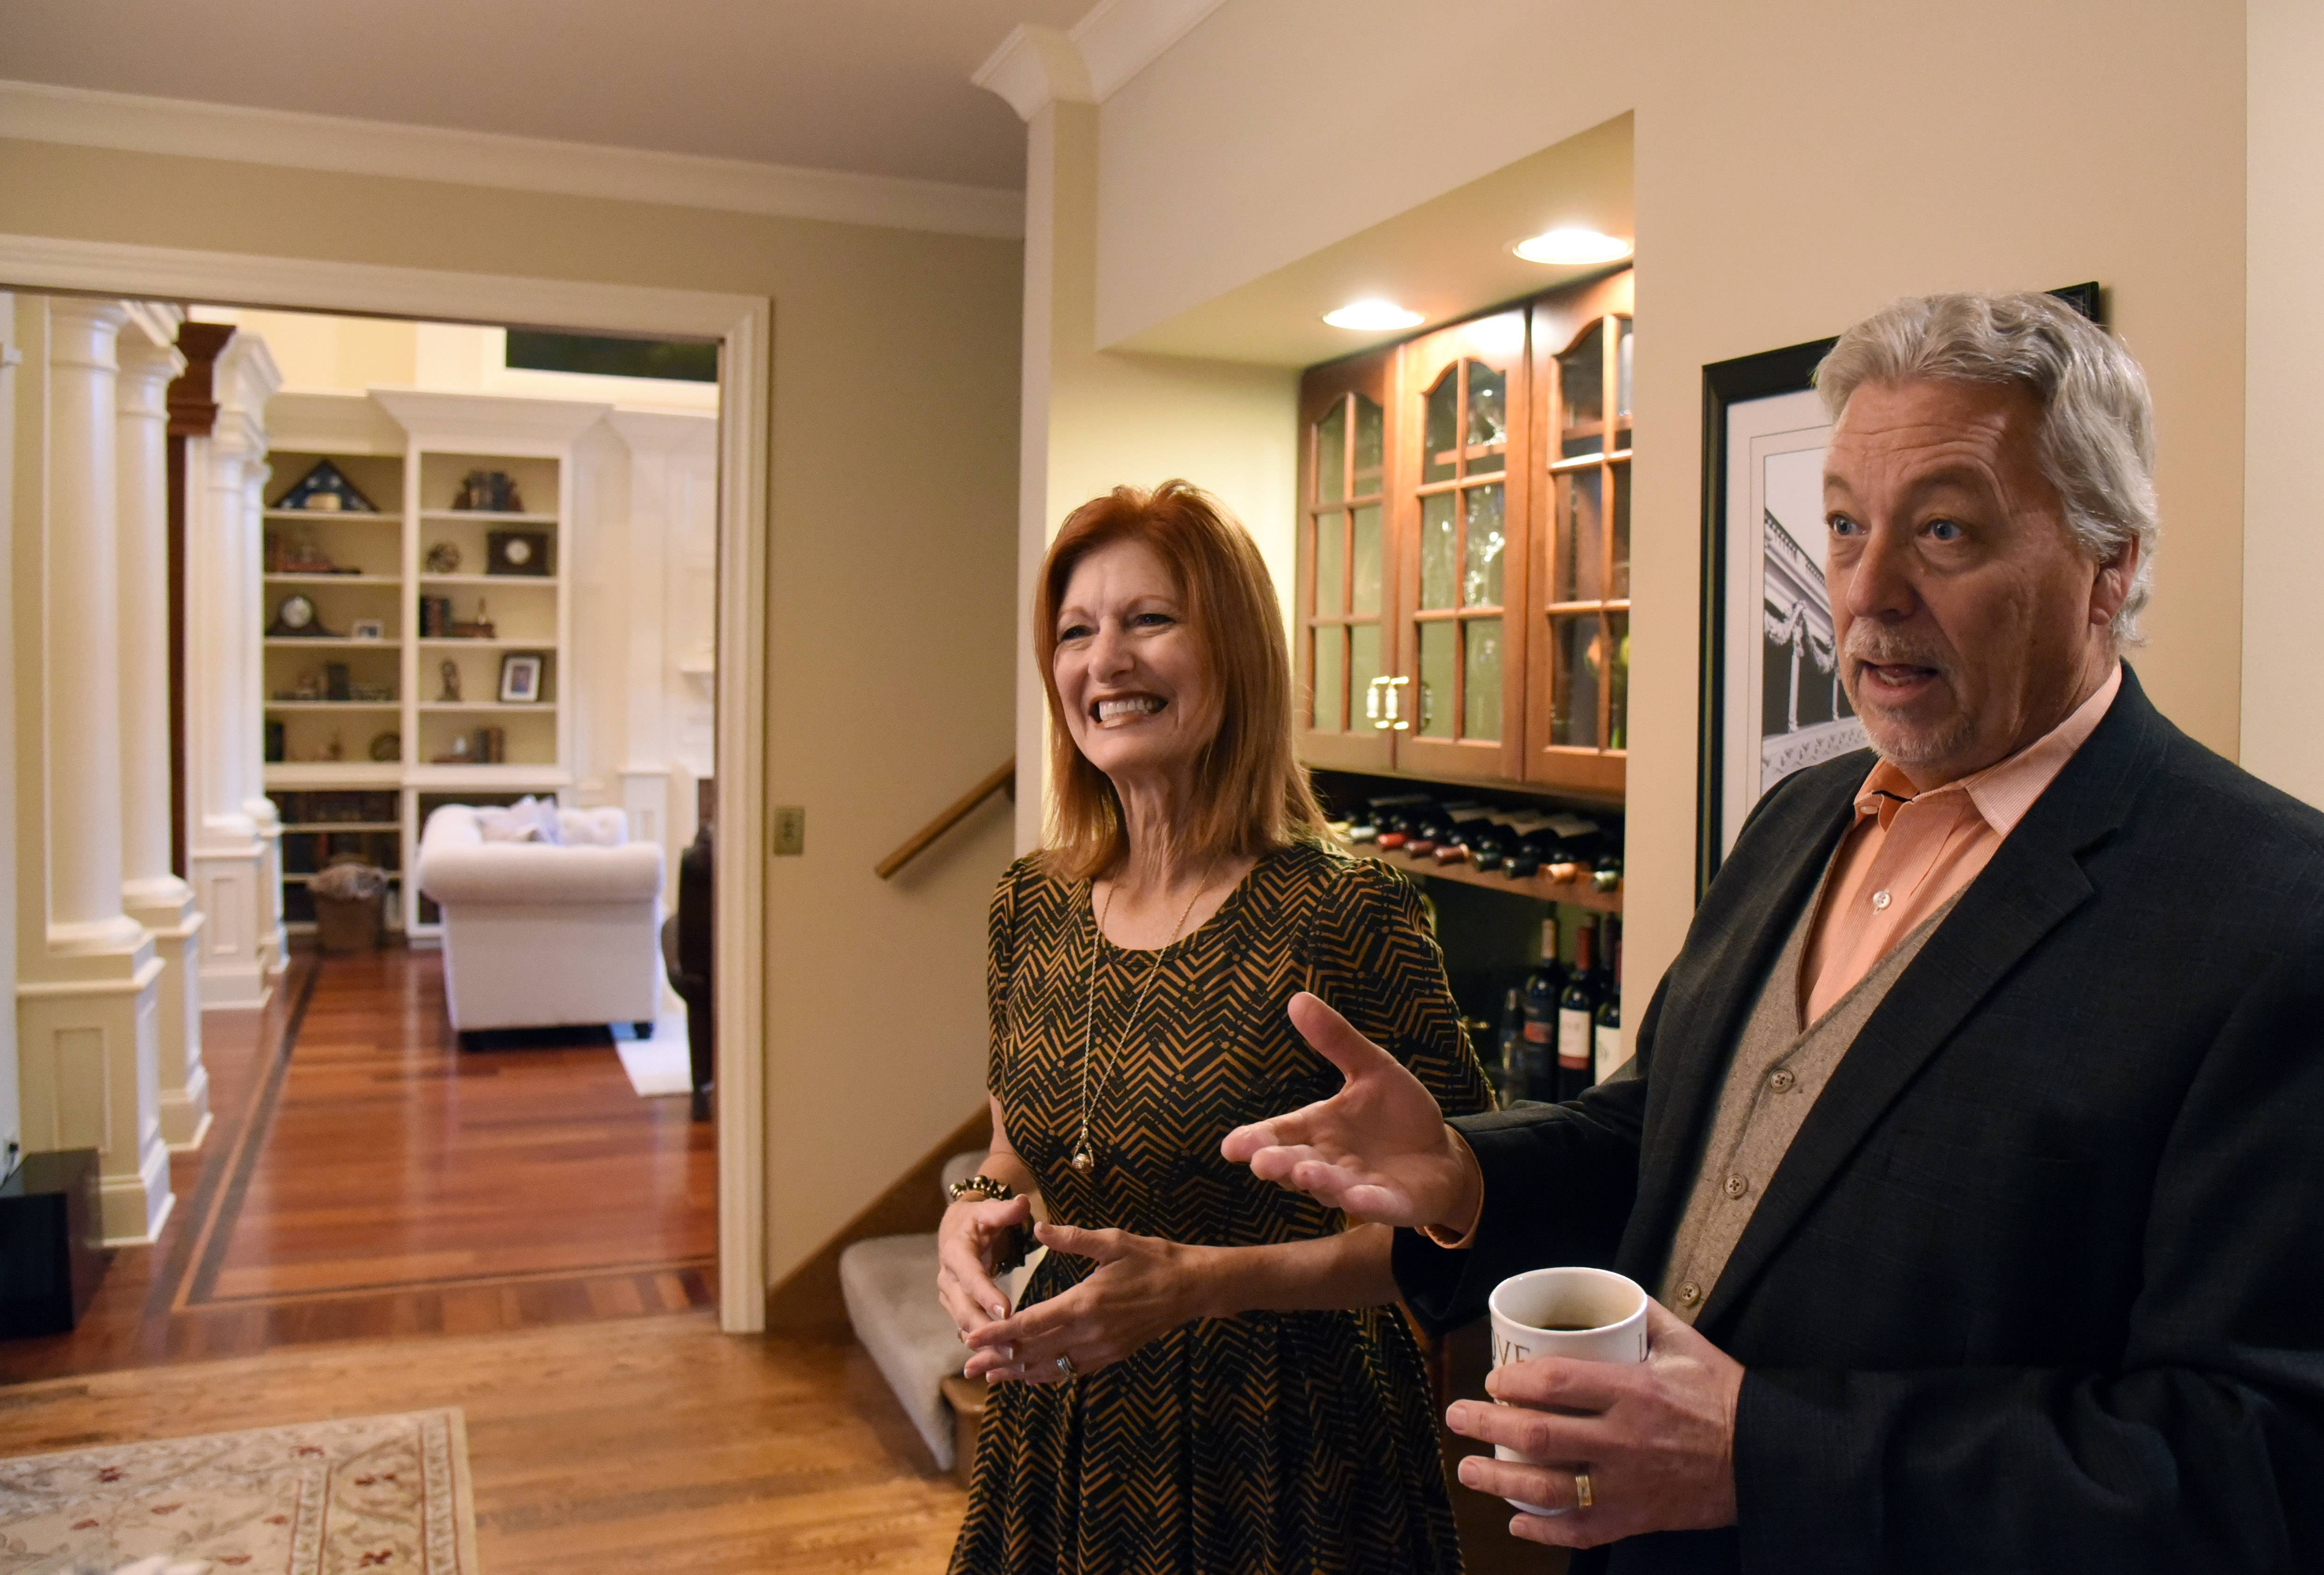 Janine and Mike Callahan live the mansion life as they occupy homes that are awaiting sale. The trade-off is they have to furnish the houses and keep them clean and ready to show.